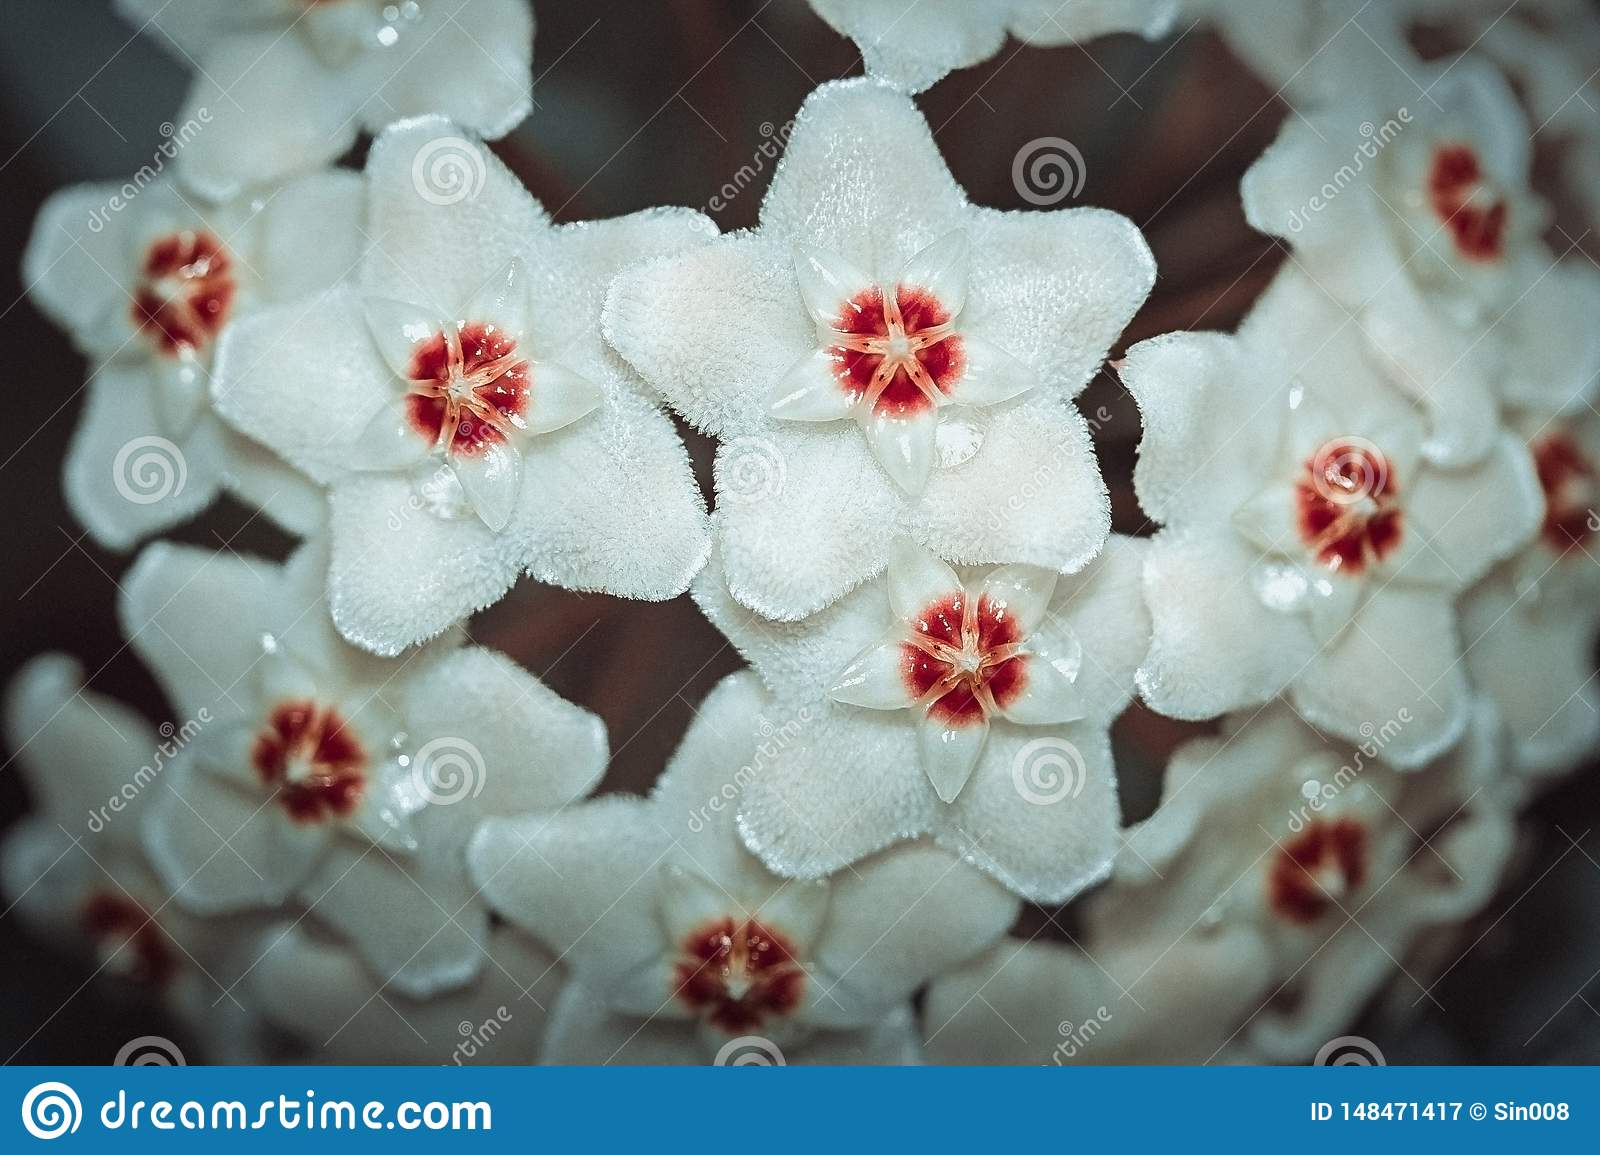 Hoya carnosa, Porcelainflower, waxplant closeup. White fluffy flower with a red center like a star.